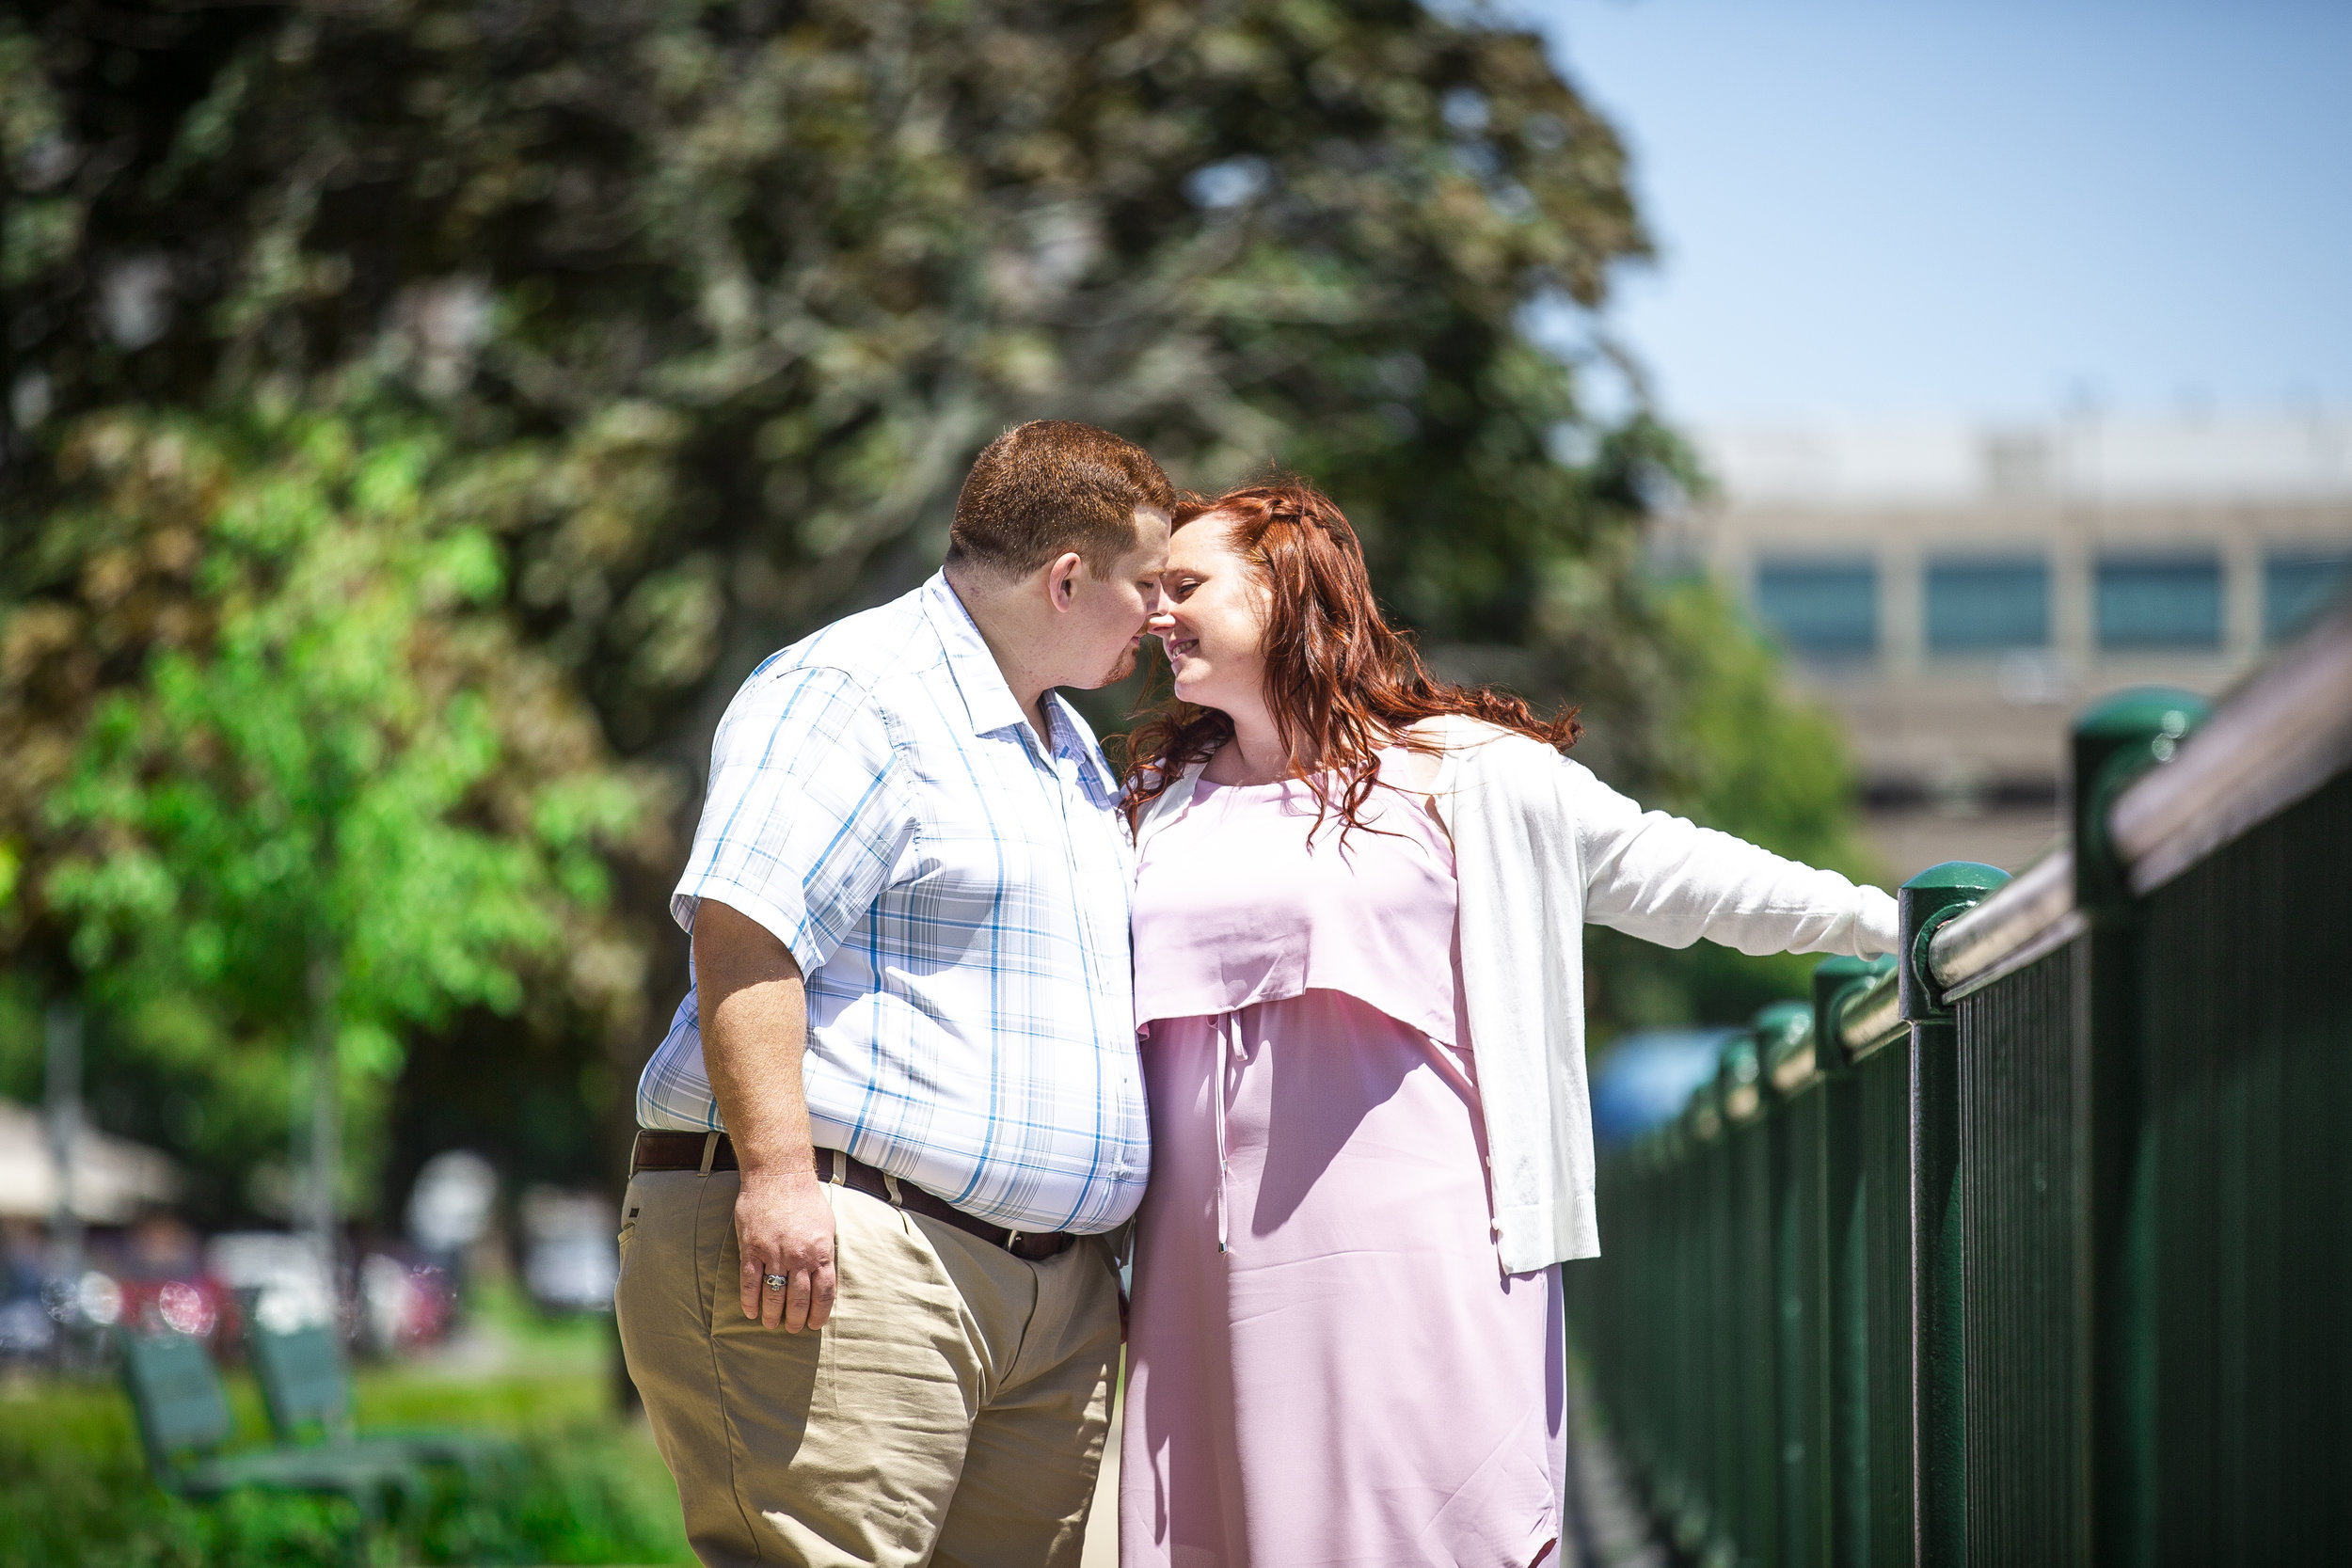 8C2A1176+Giovanni The Photographer+Best Boston Engagement Photography+Charles River and Boston Public Garden.jpg